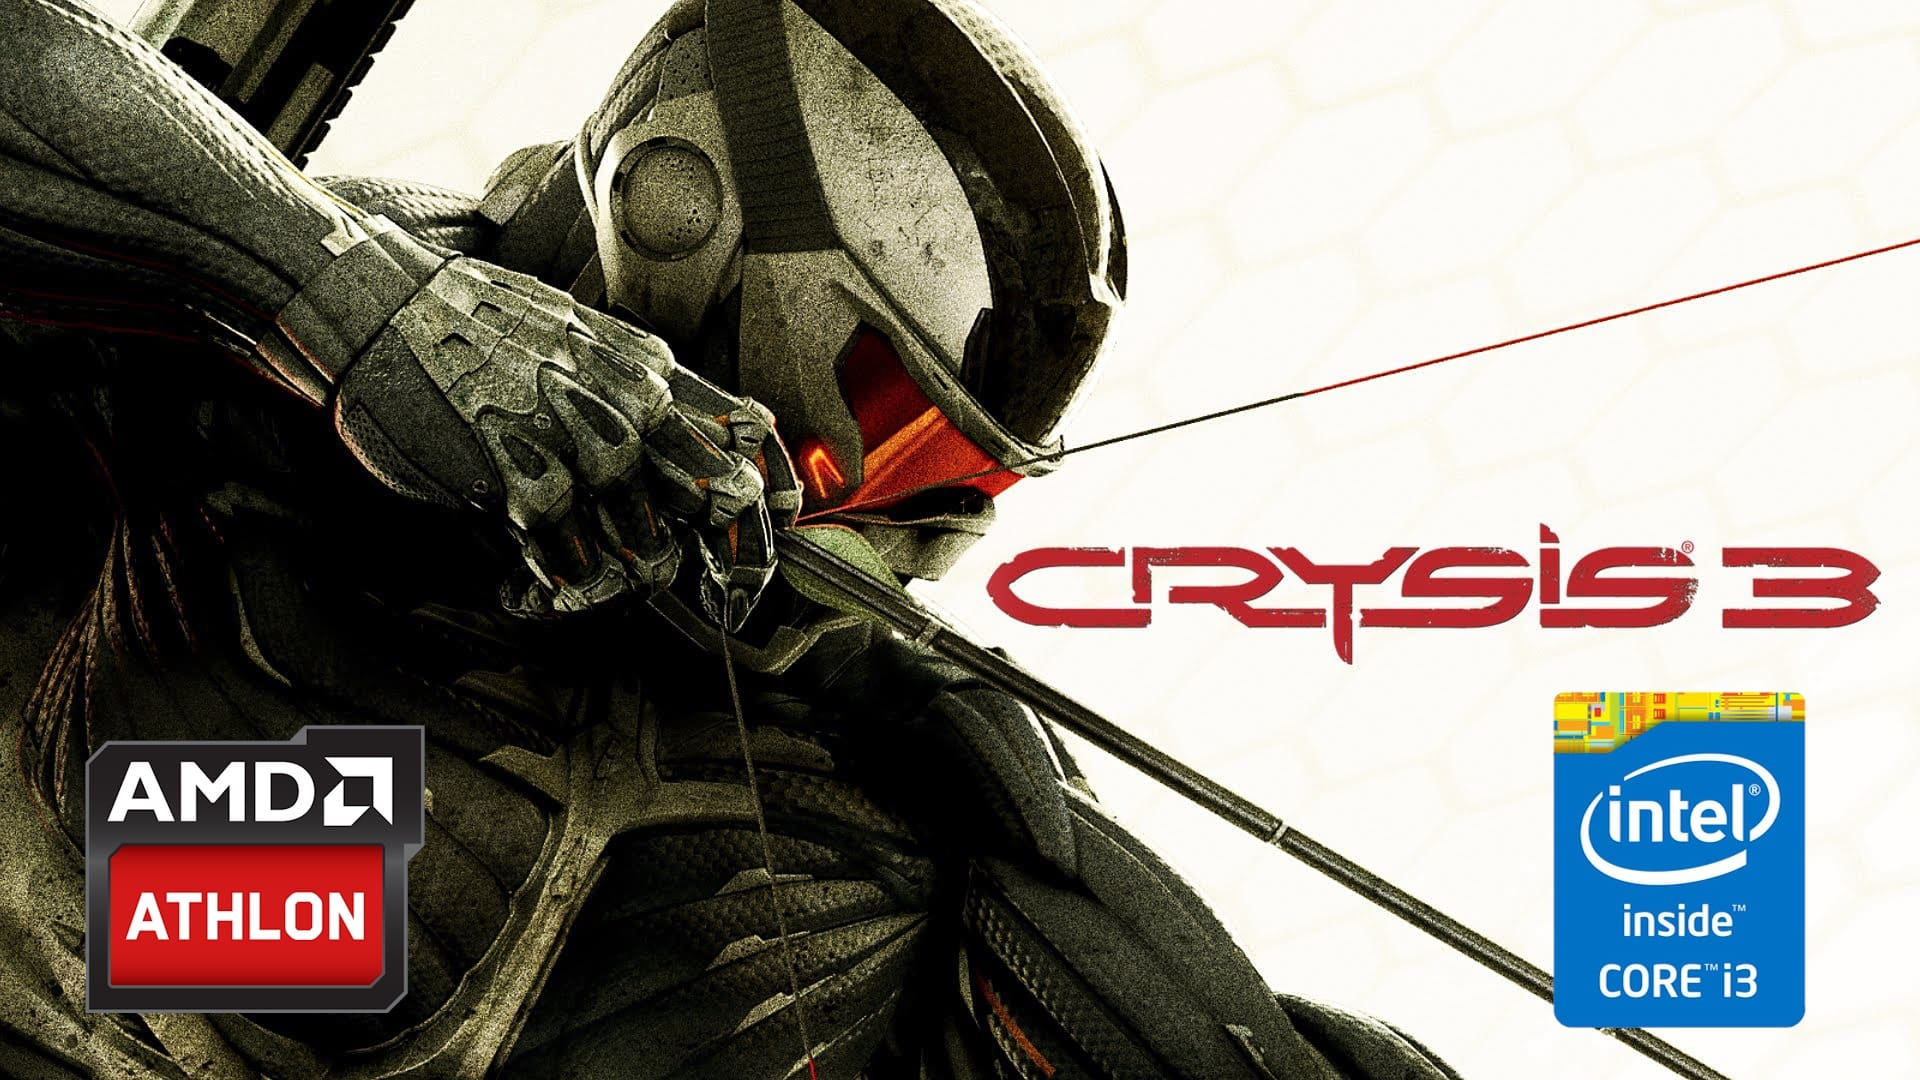 AMD vs Intel - Video confronto - Crysis 3 GTX 950